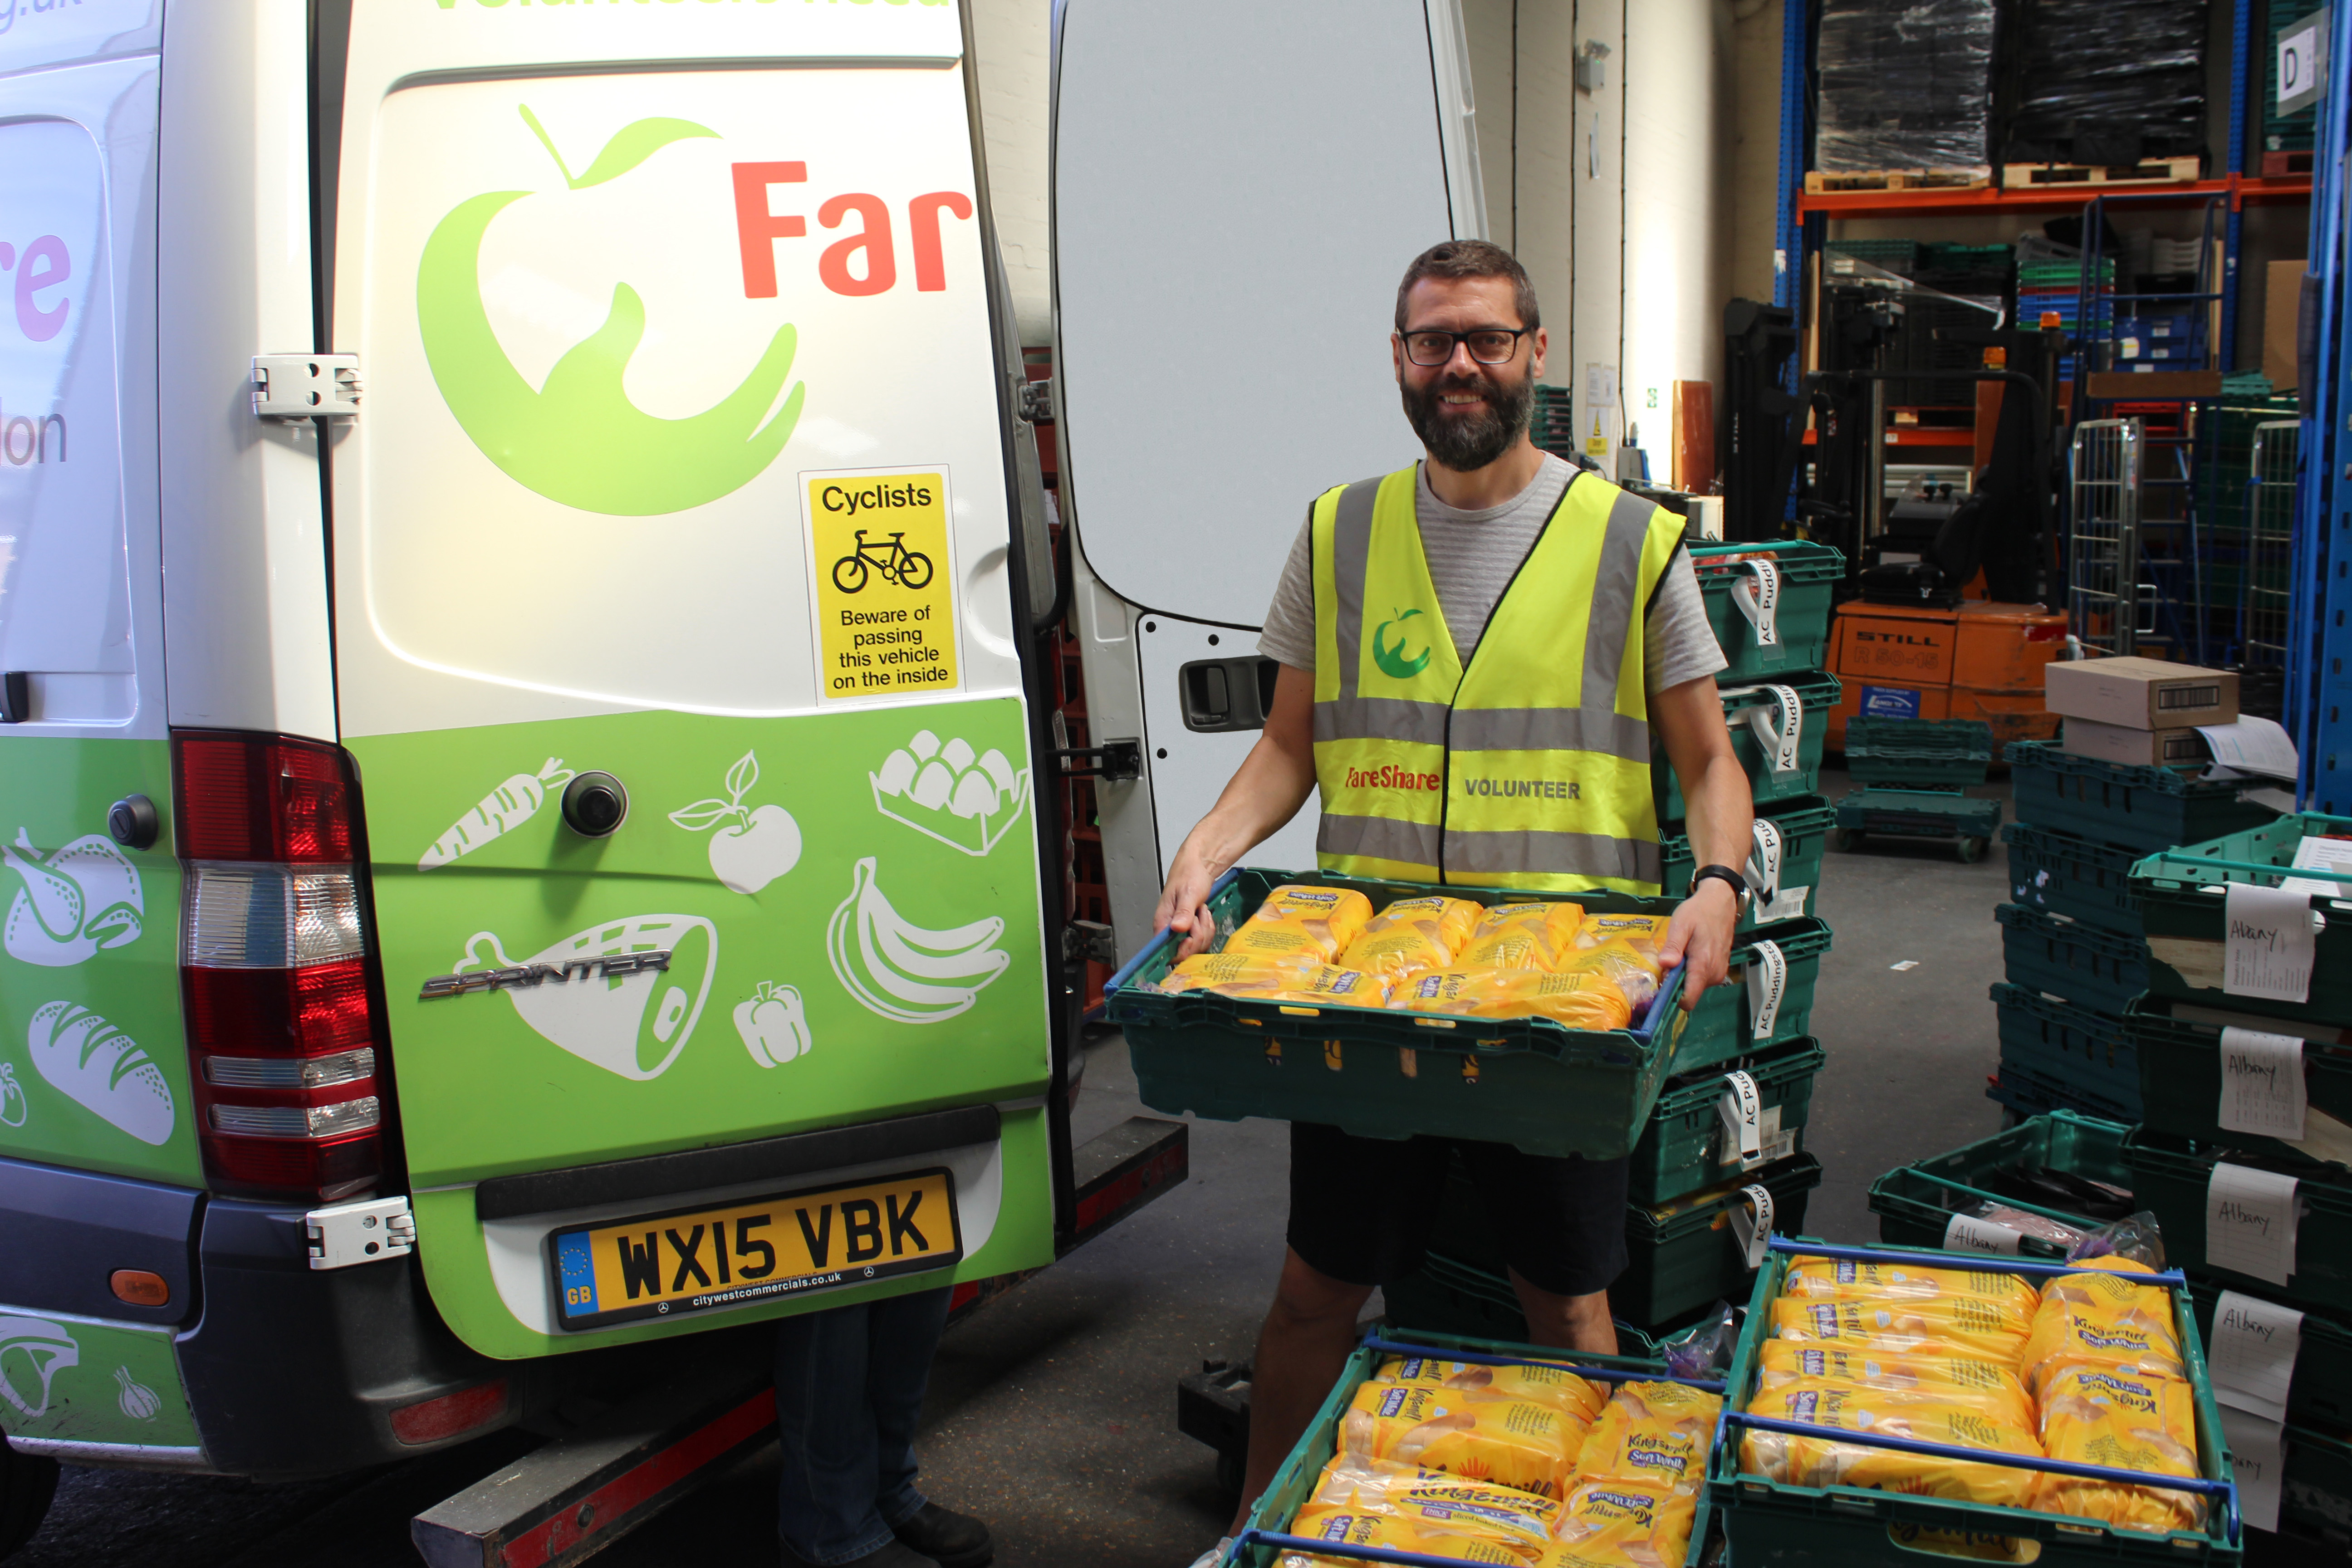 Kingsmill surplus bread from Allied Bakeries at FareShare London